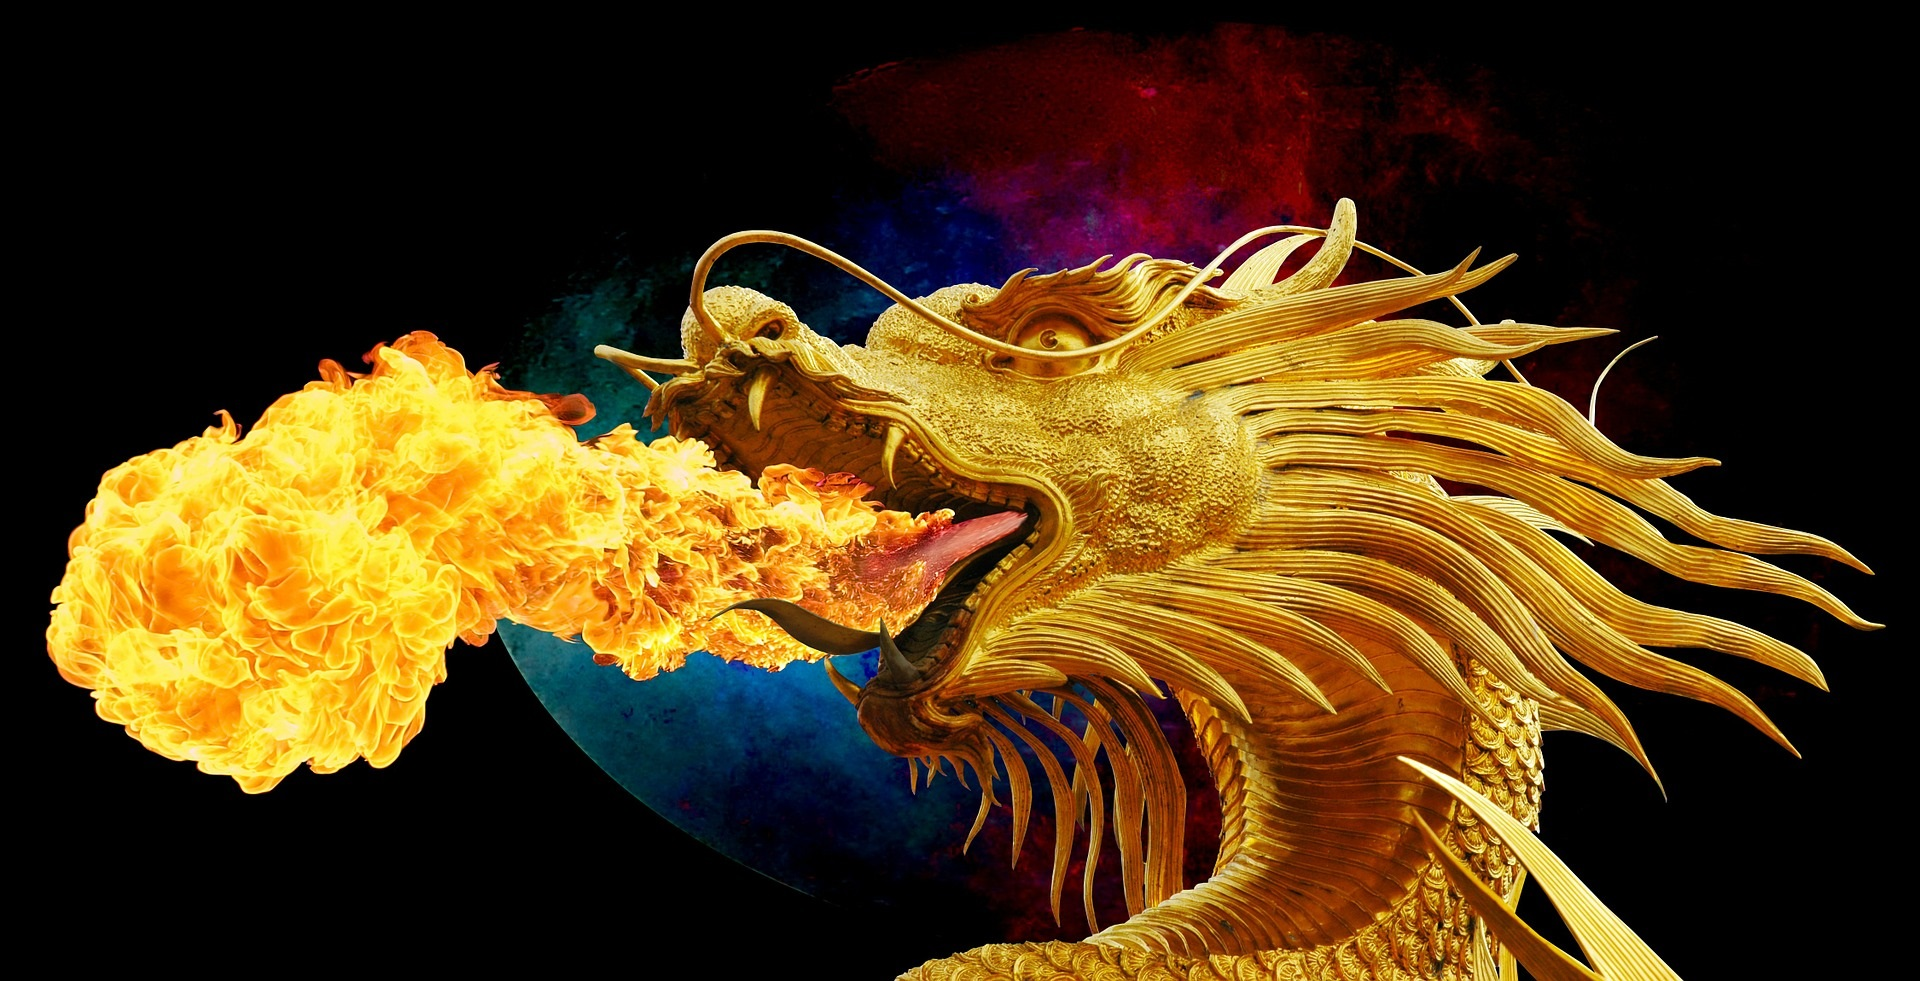 Image of a dragon representing Chasing the Dragon Inhaled Heroin